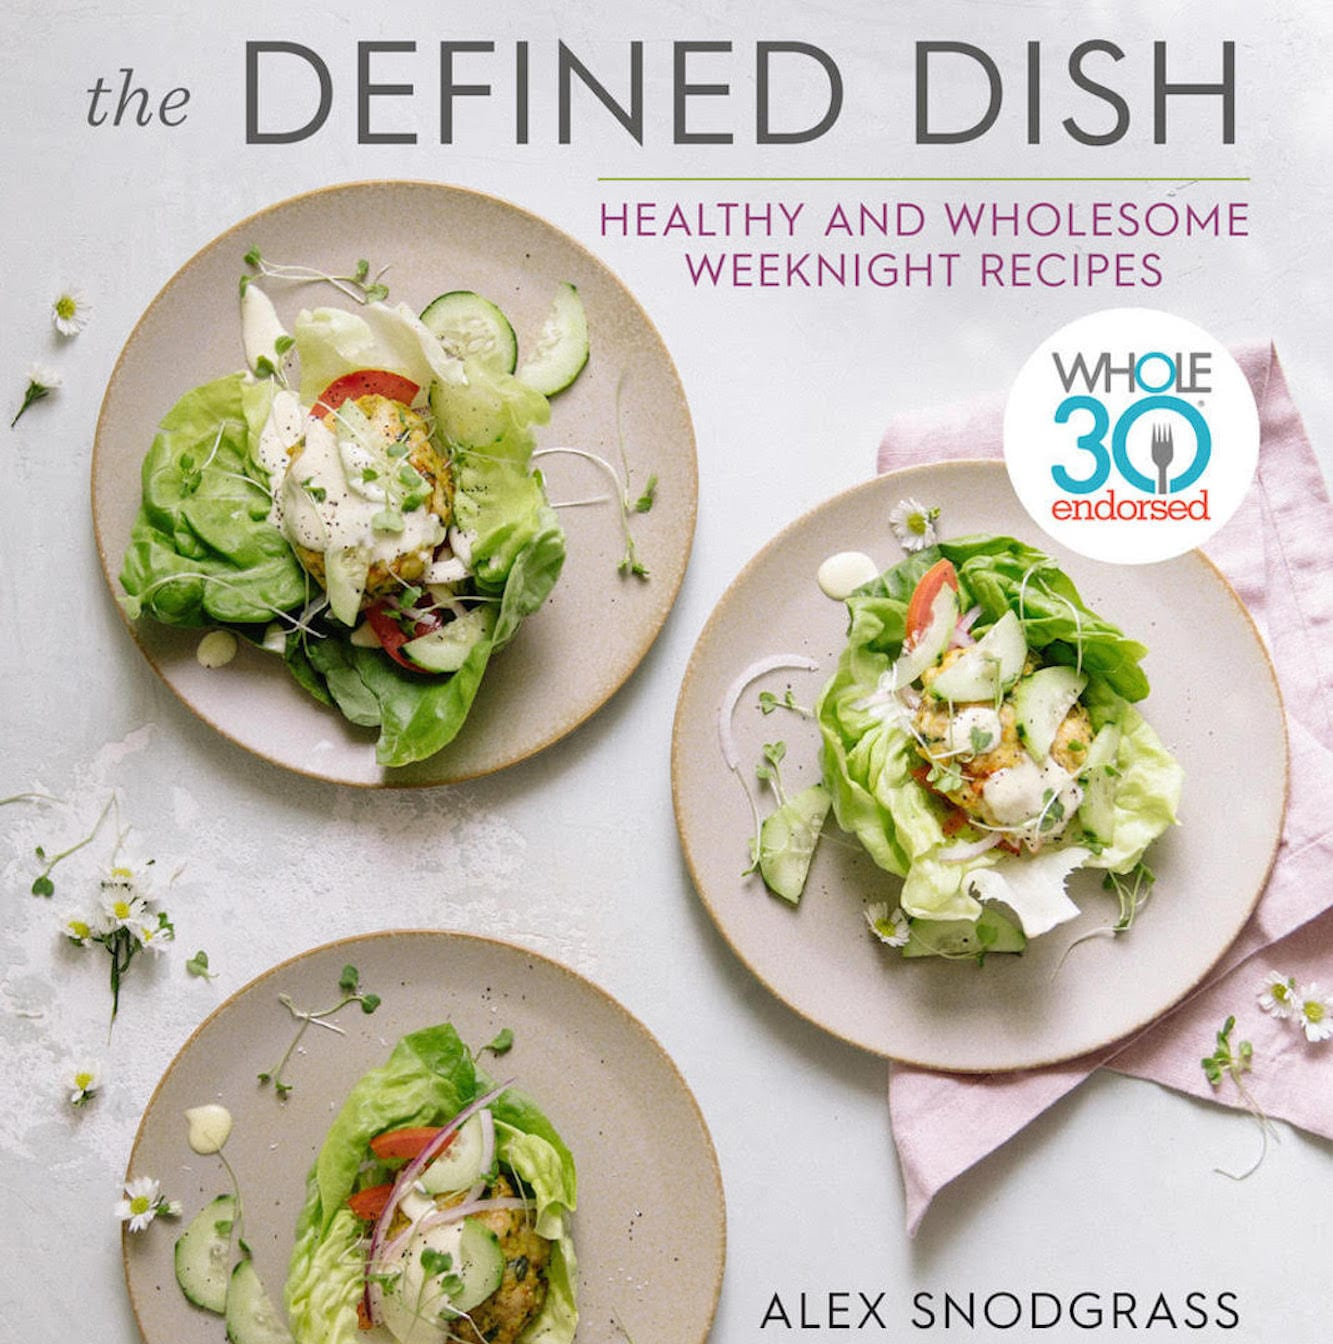 Easy-Going Weeknight Meals from The Defined Dish